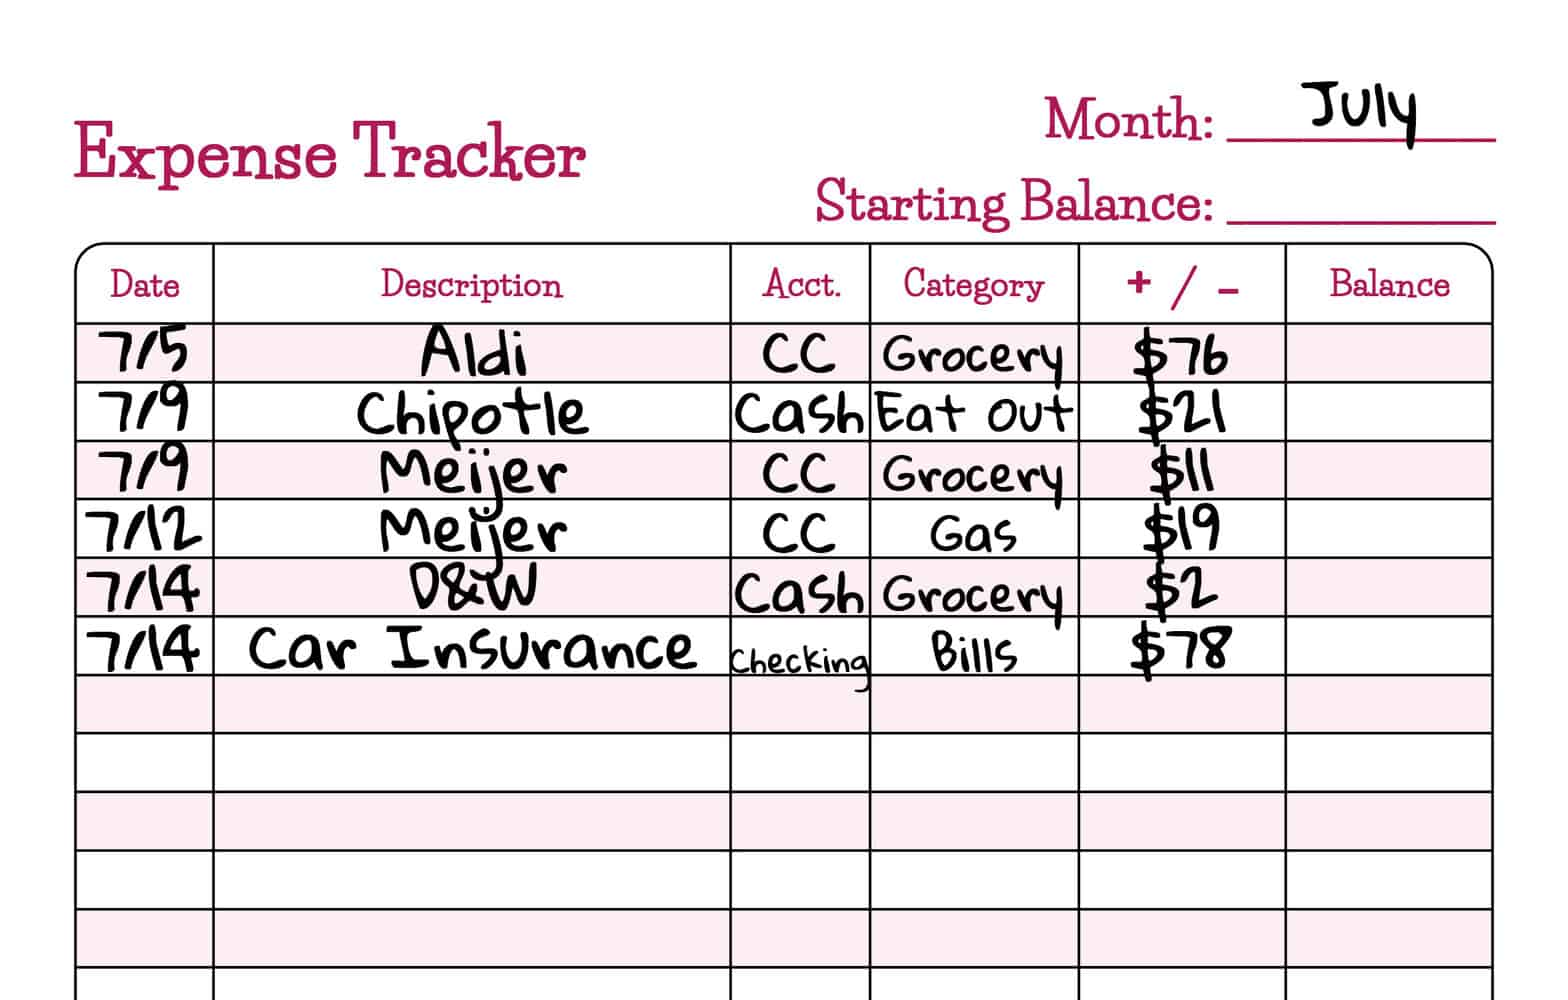 picture regarding Spending Tracker Printable titled Free of charge Paying out Tracker Printable That Will Make improvements to Your